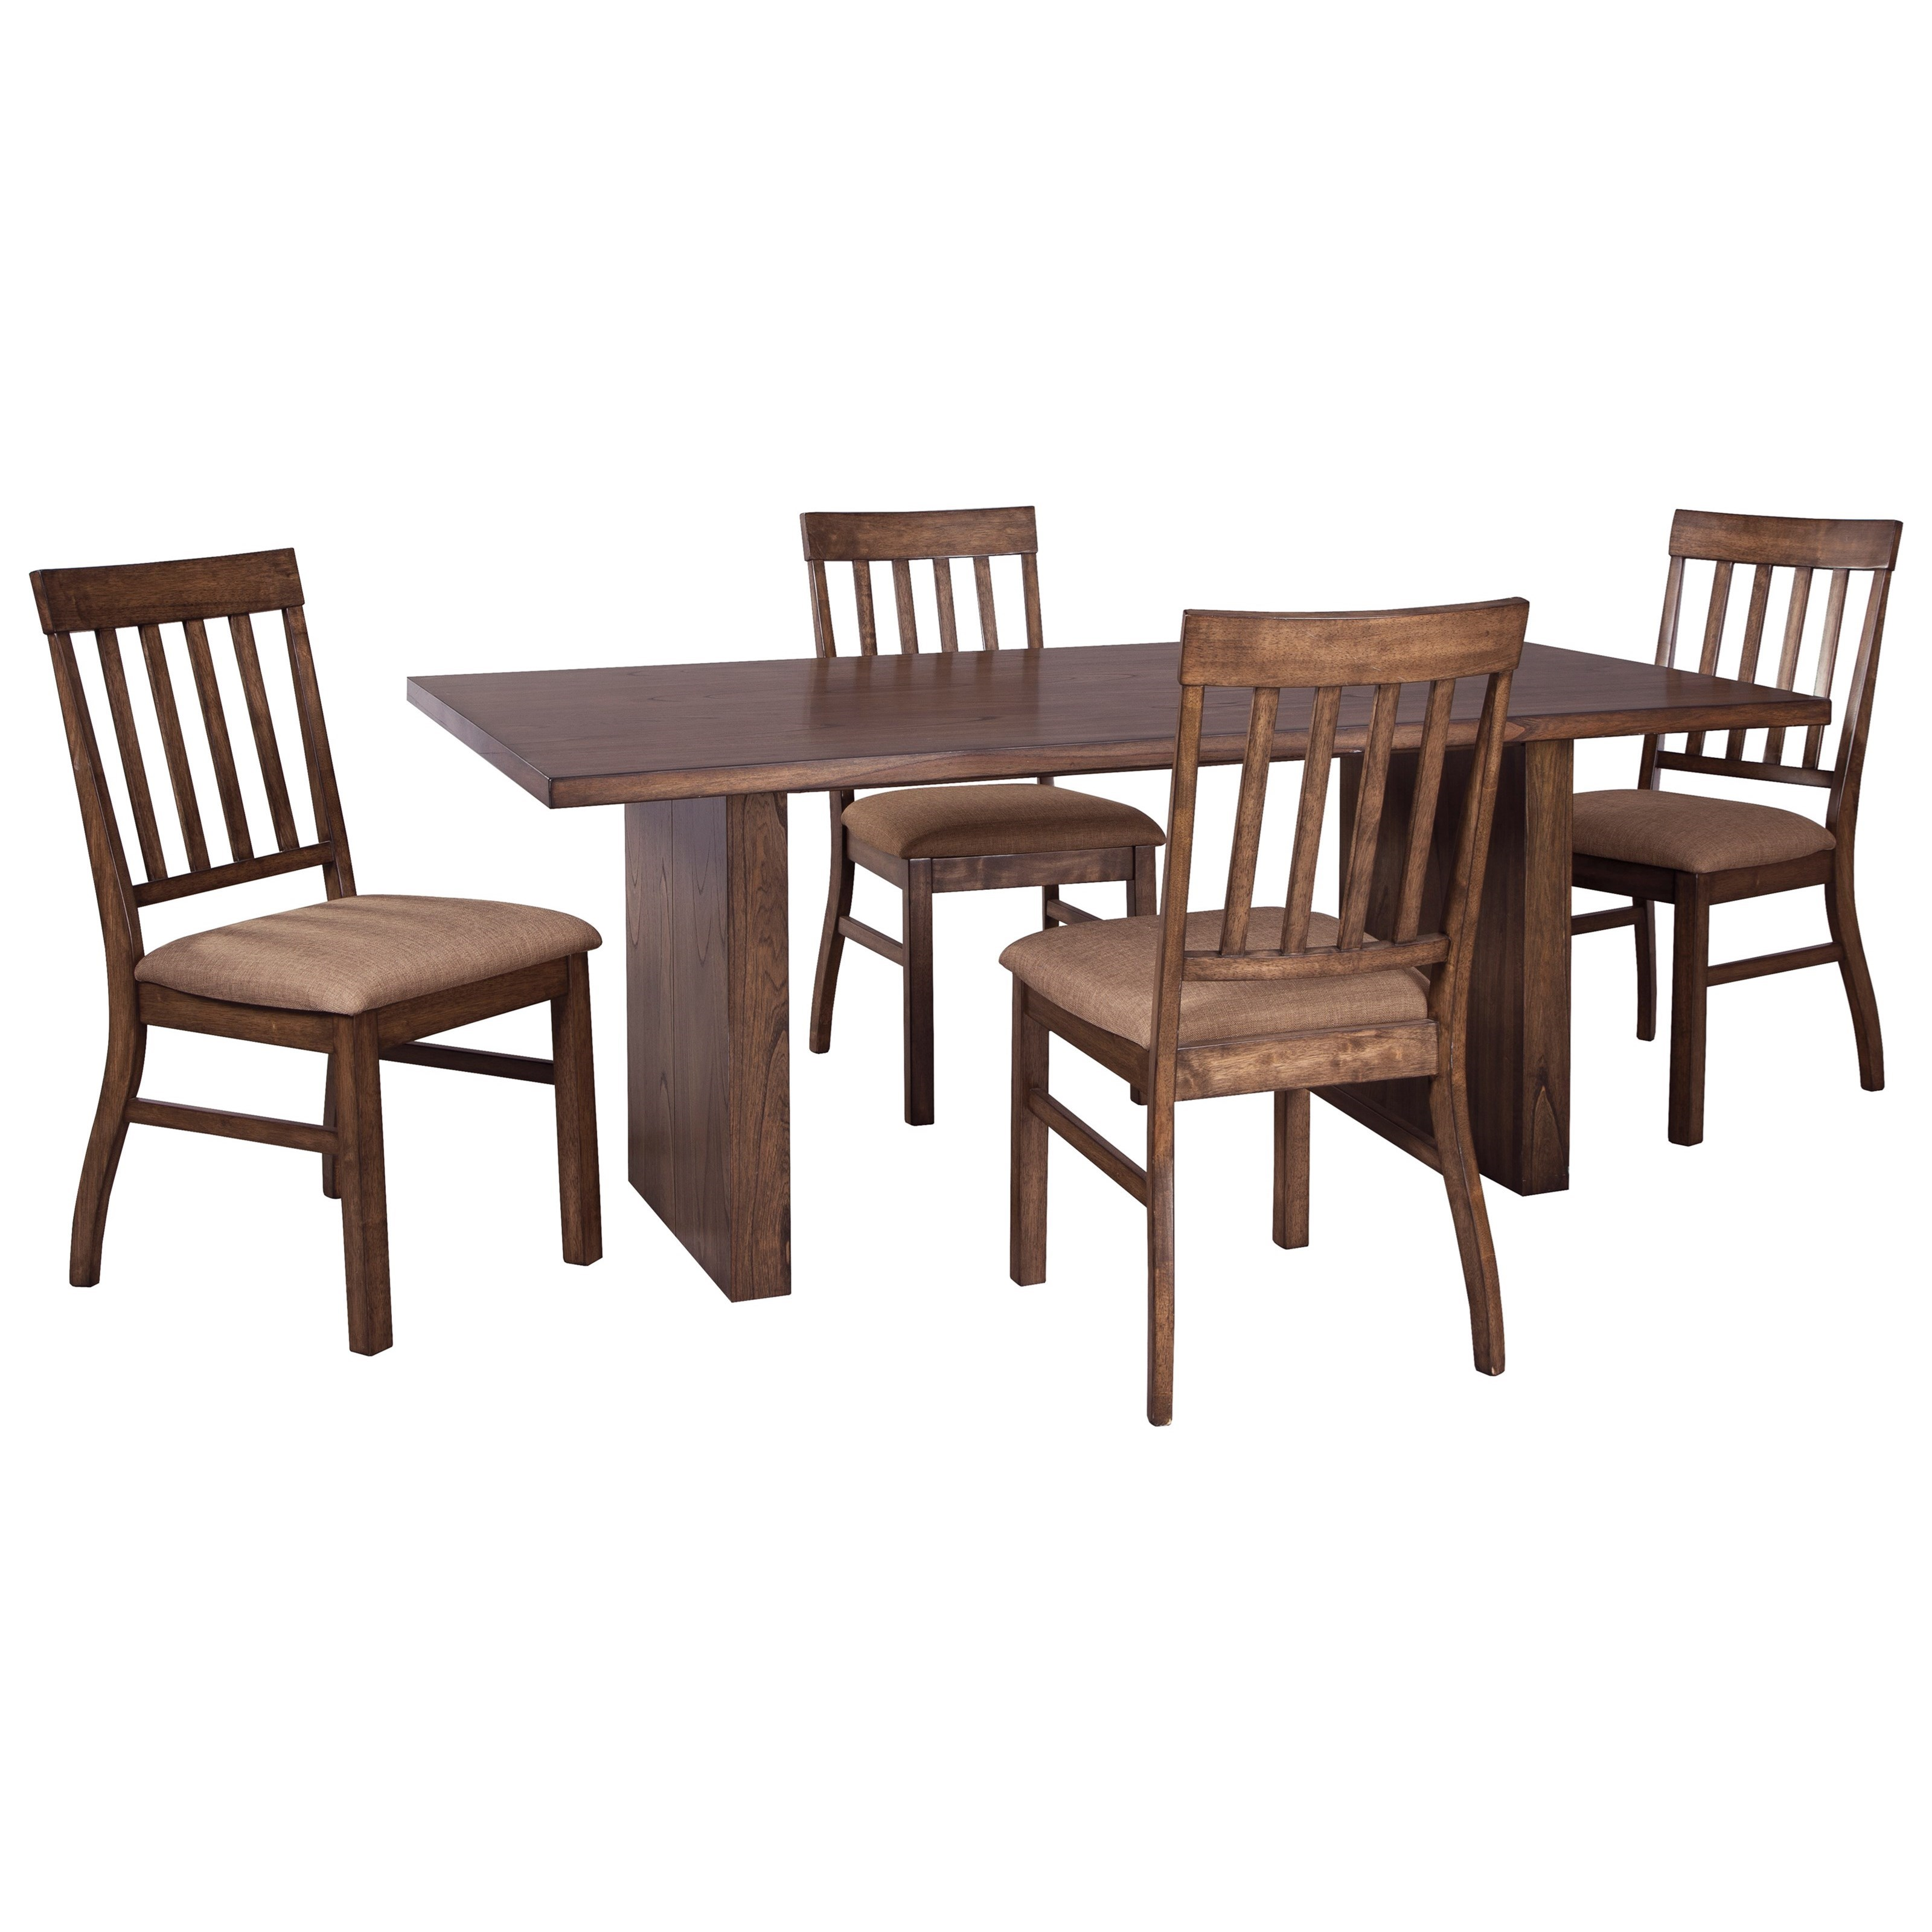 Signature Design by Ashley Zilmar 5-Piece Rectangular Dining Table Set - Item Number: D448-45+4x01